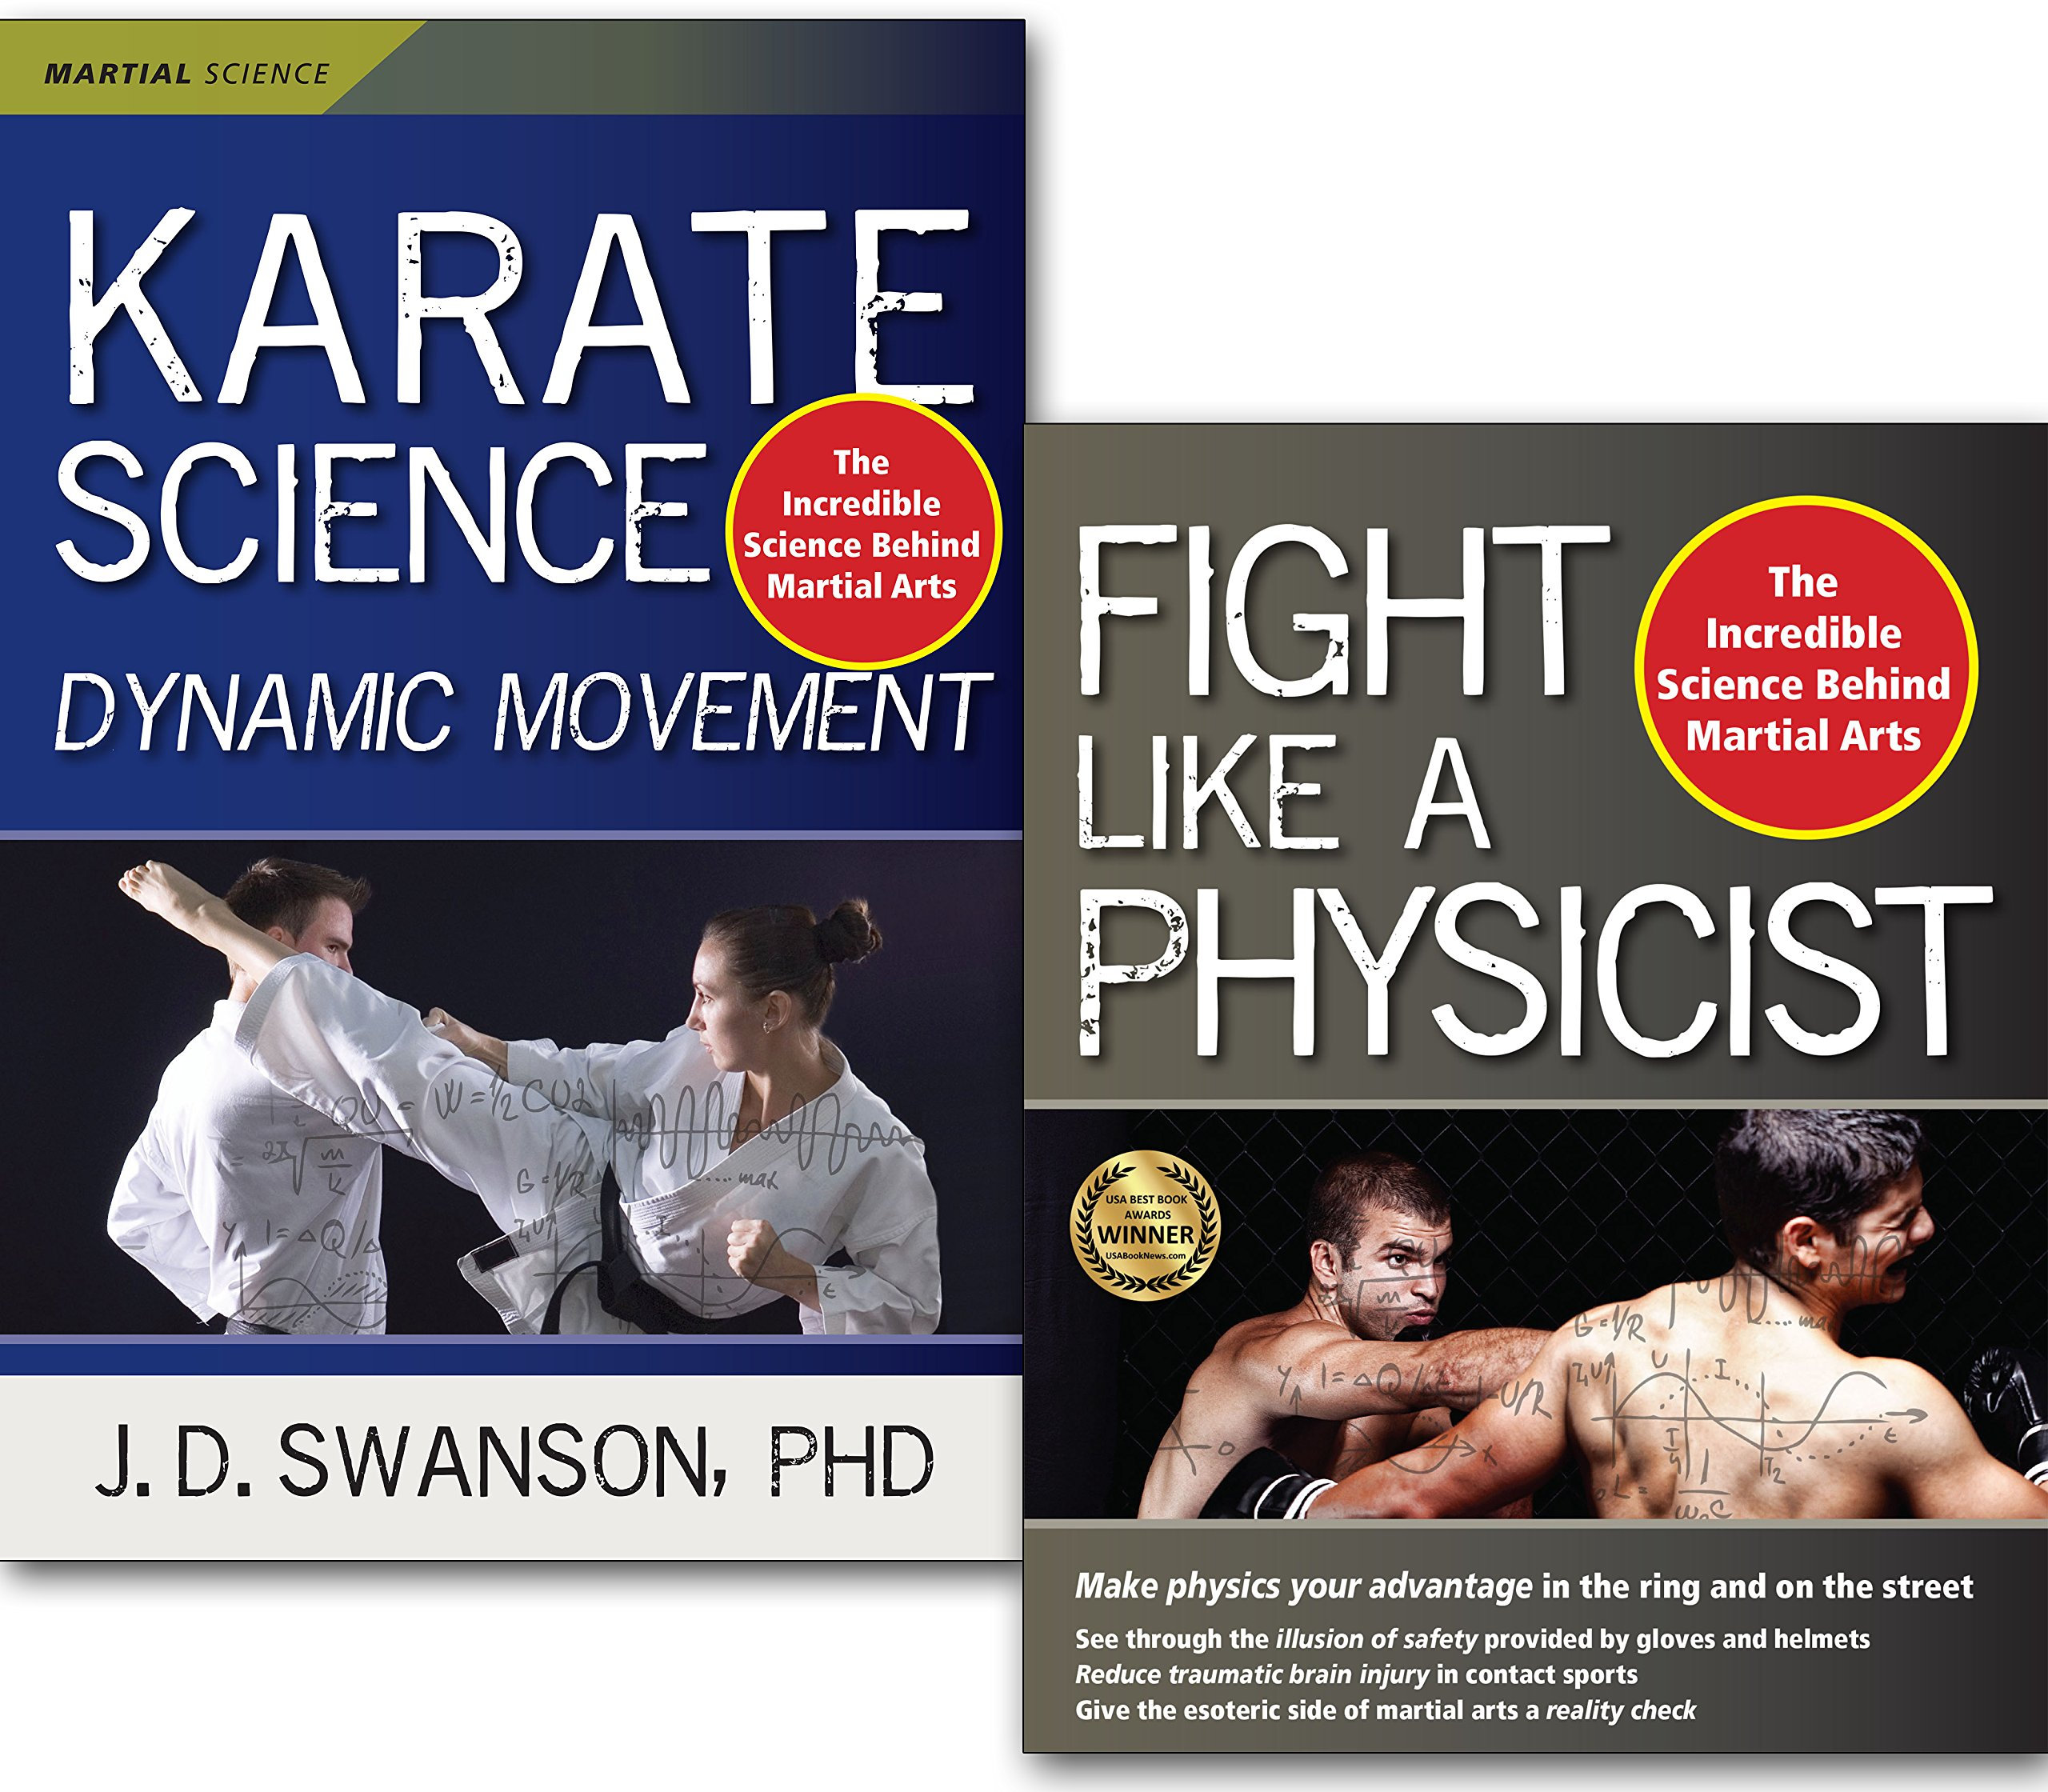 karate science dynamic movement